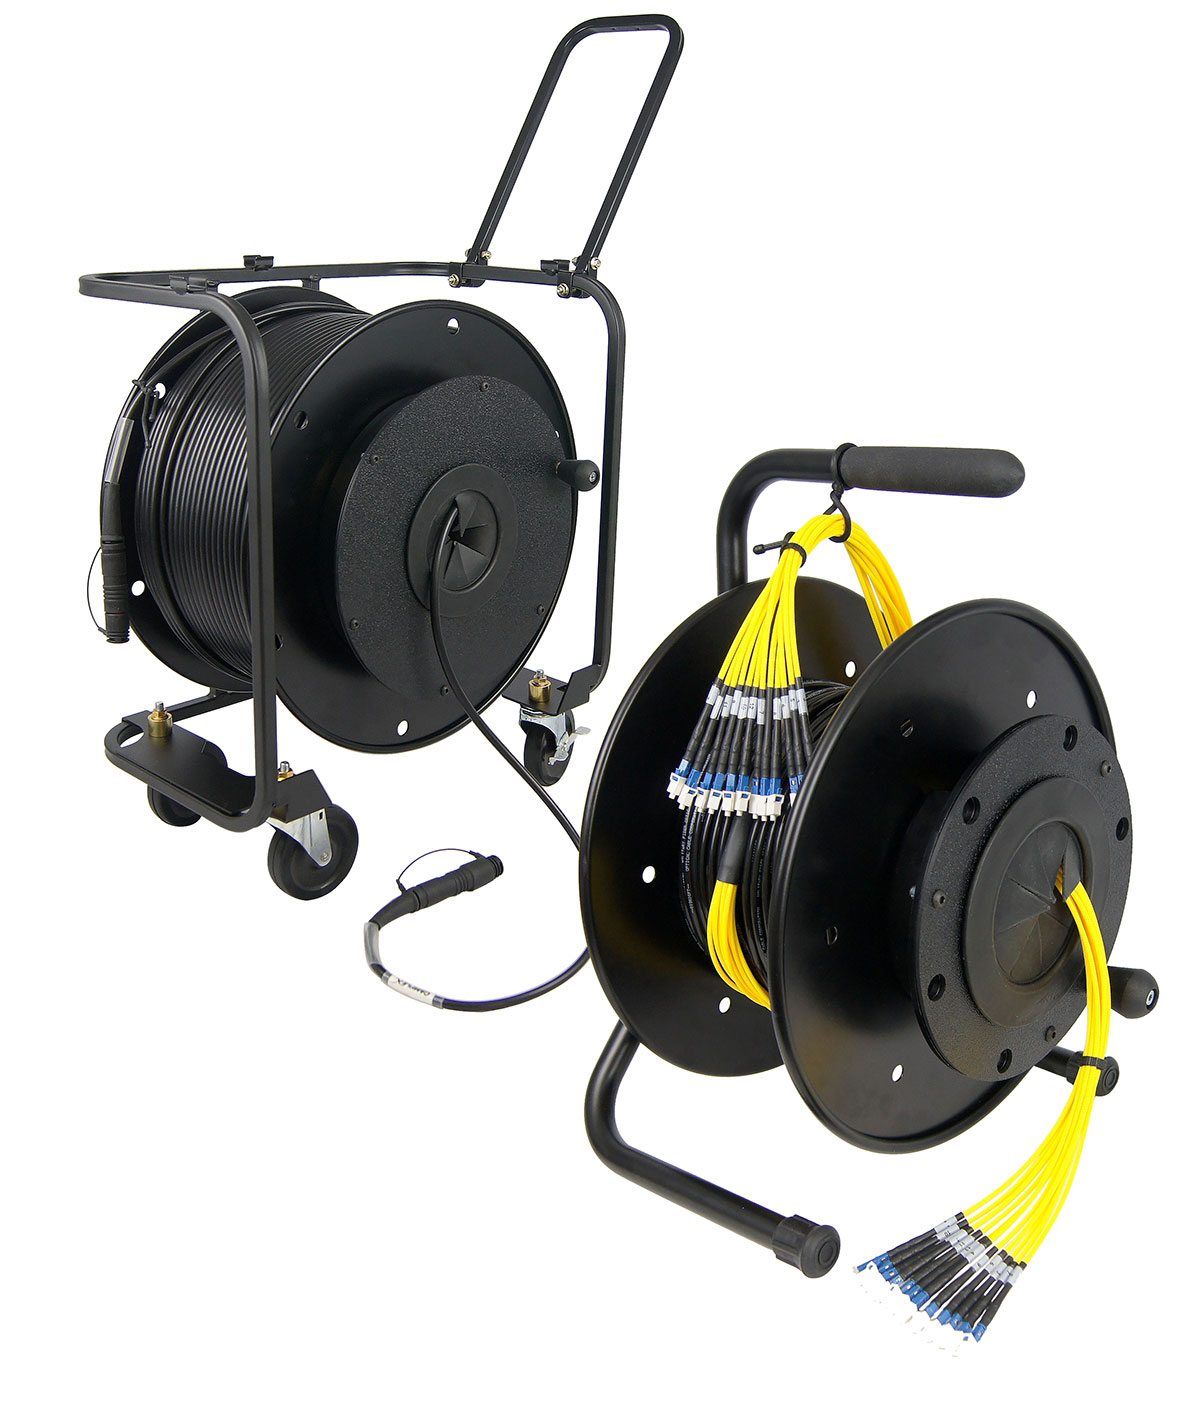 HANNAY Cable Reels AVF14 and AVF18 with SMPTE Cable